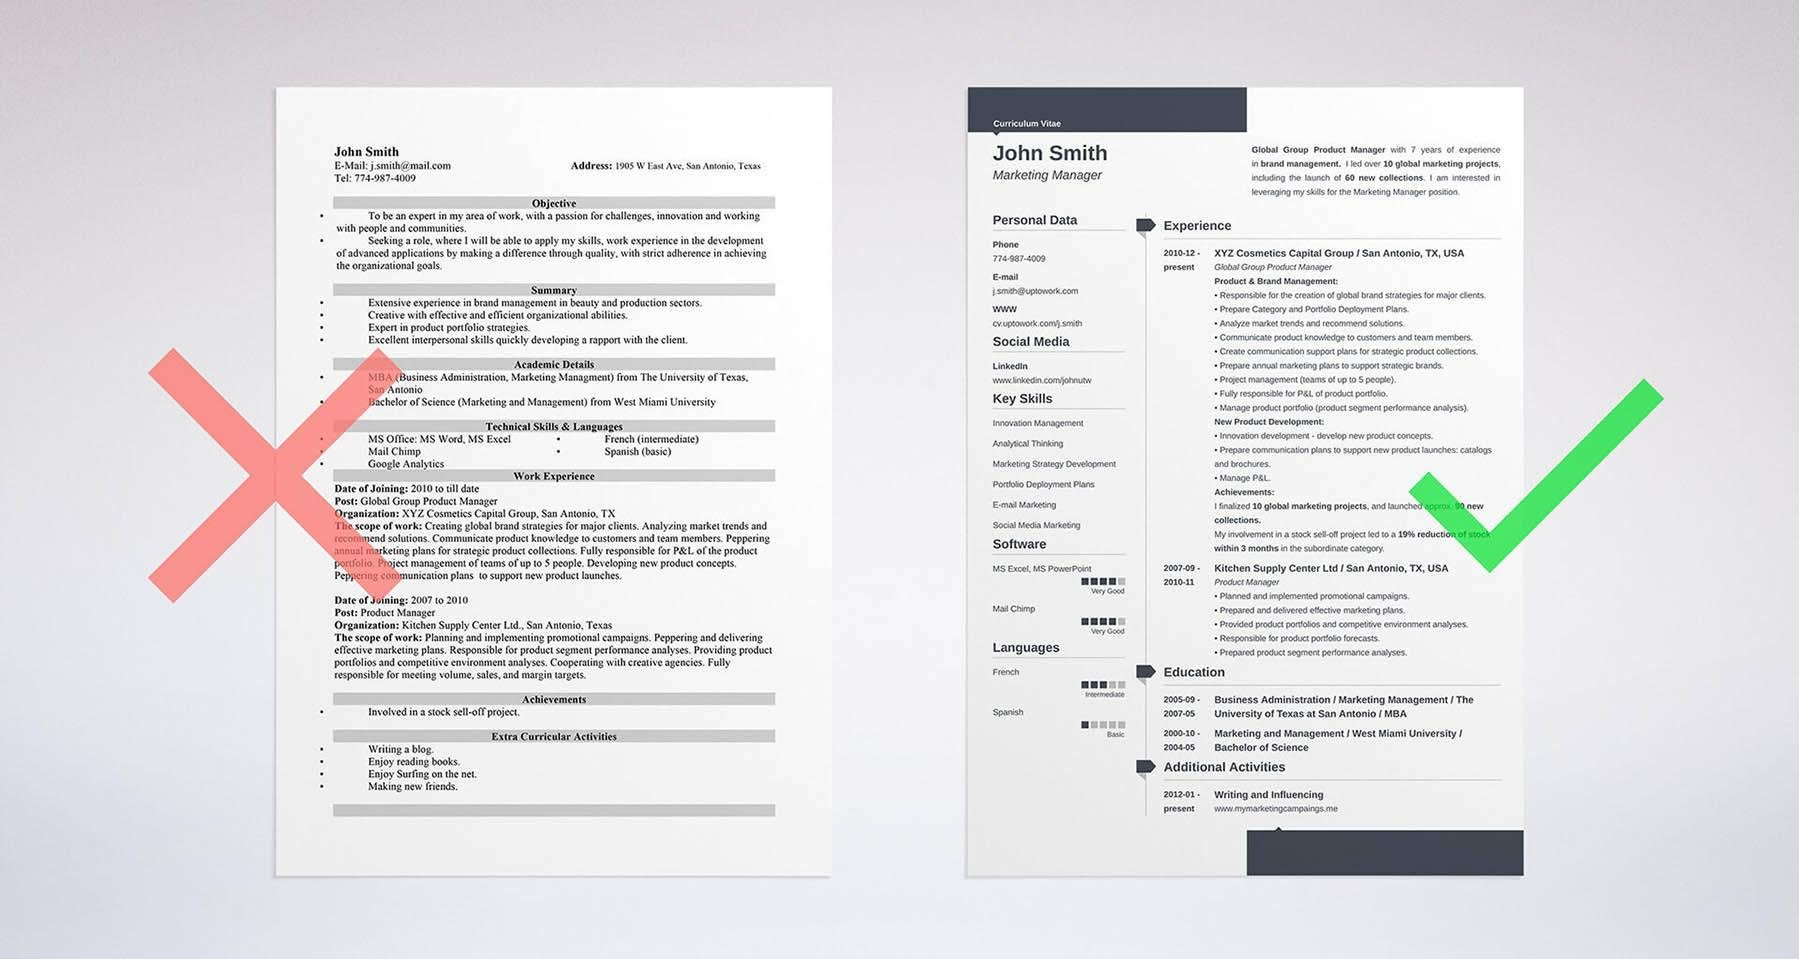 Sample resume template - See 20 other templates and create your resume here.